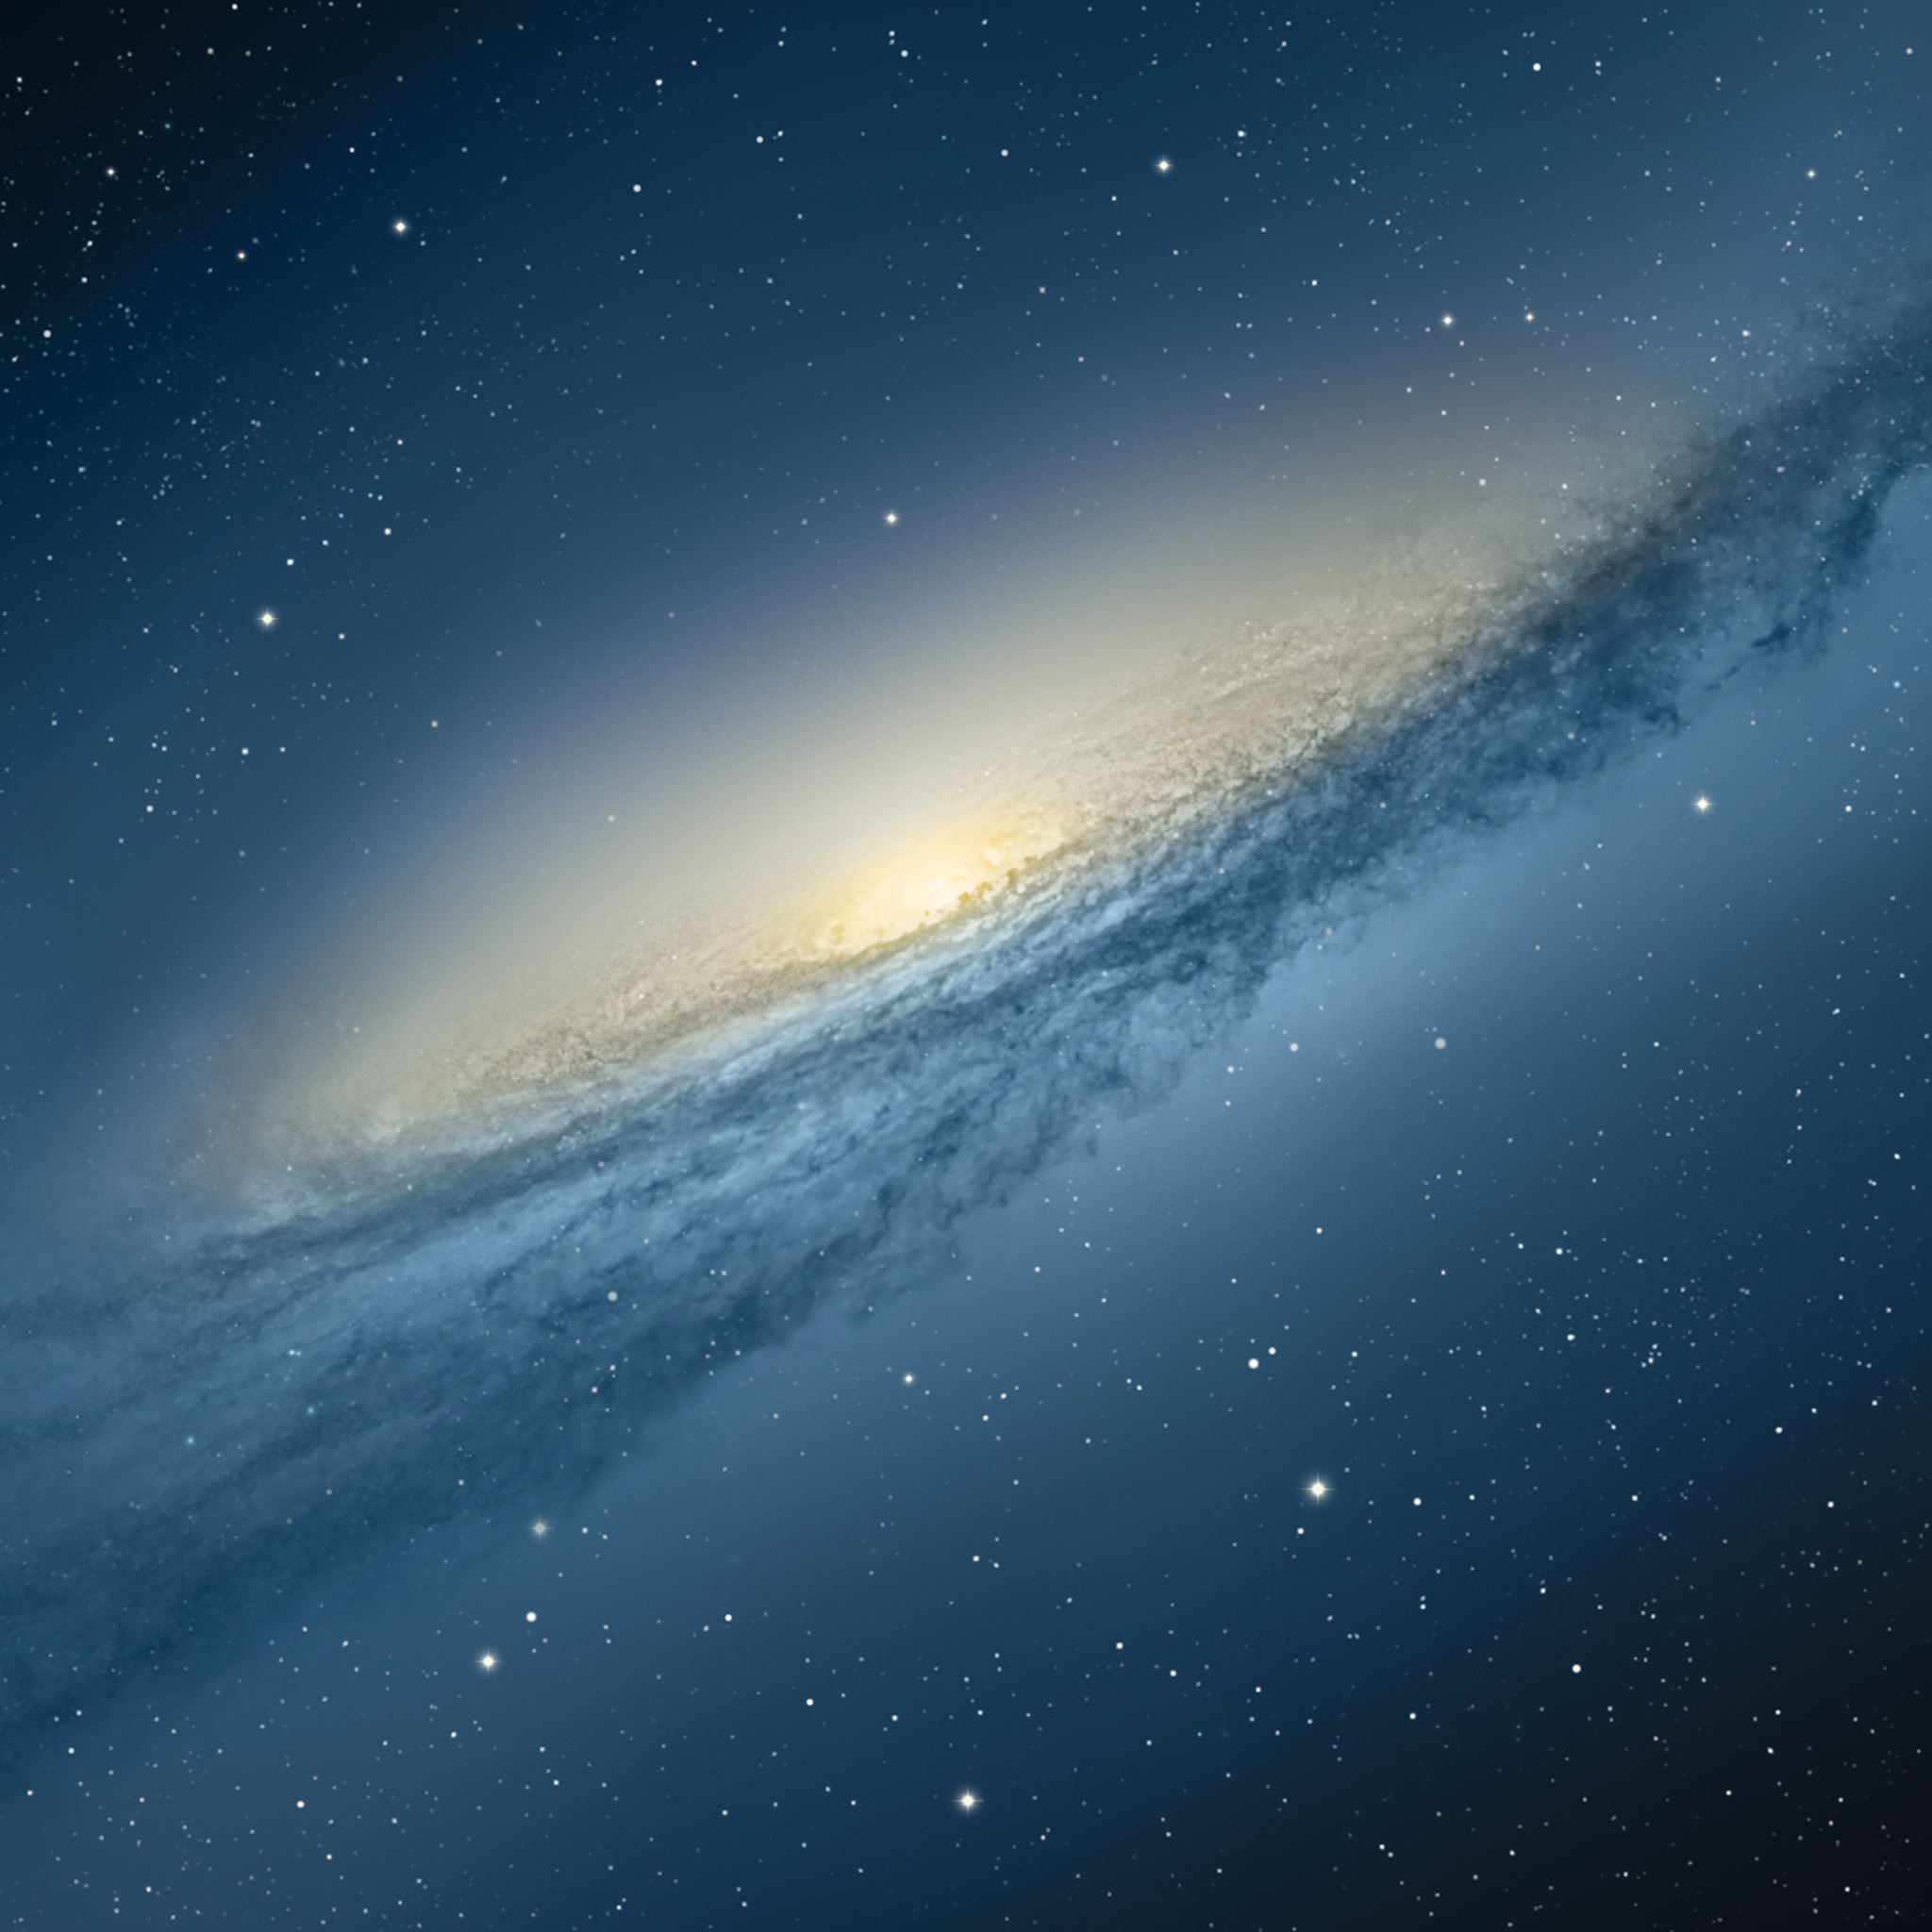 galaxy ipad air wallpaper download | iphone wallpapers, ipad